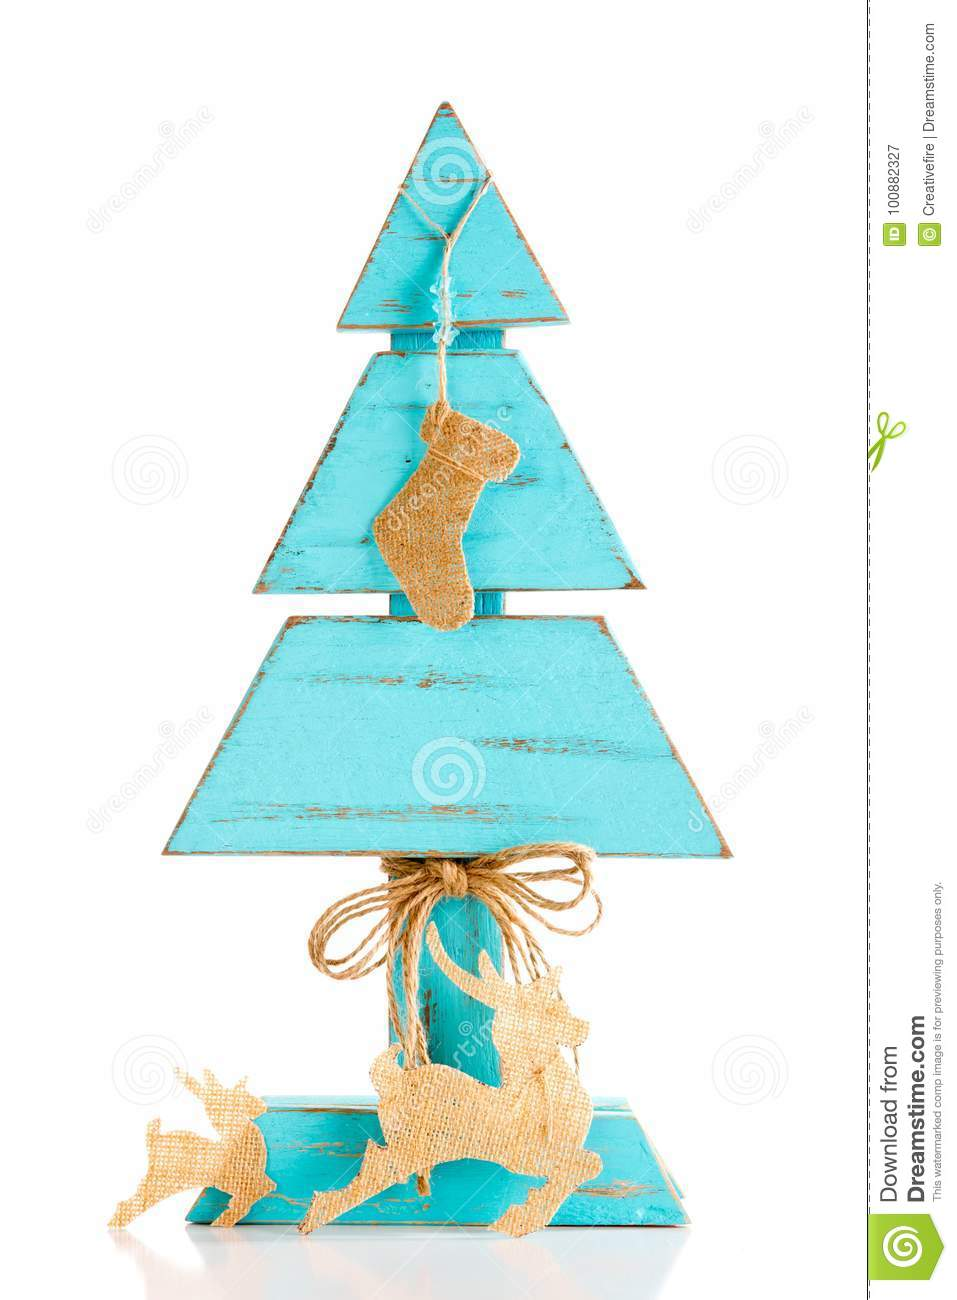 Blue Homemade Wooden Christmas Tree With Burlap Christmas Stocking Decoration White Background Stock Image Image Of Colored Ornament 100882327